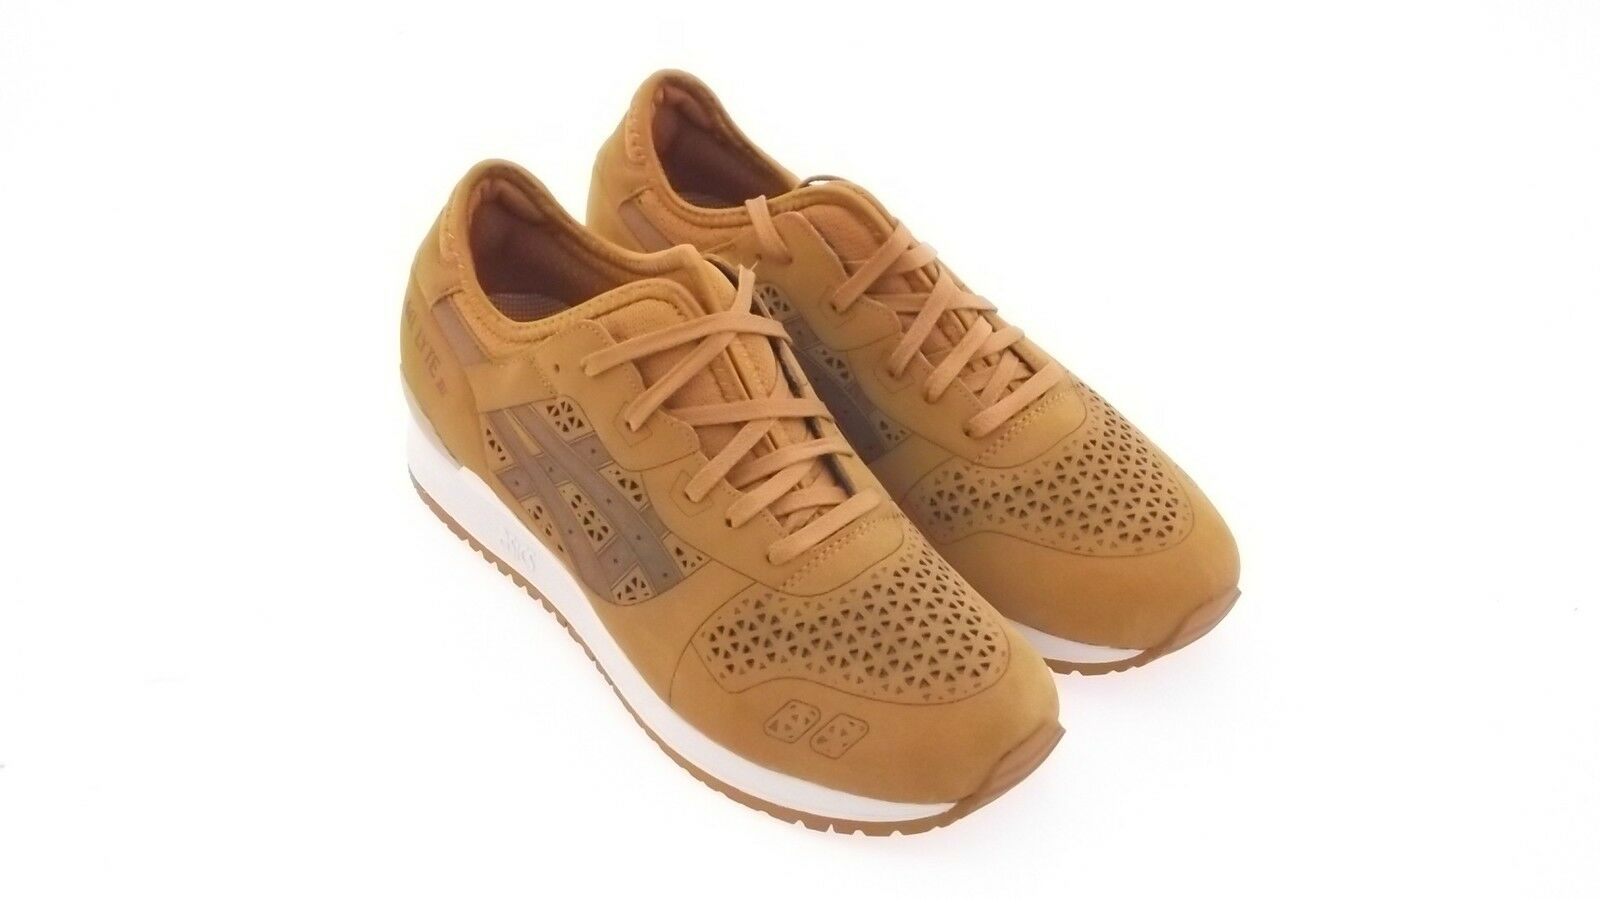 Asics Gel-Lyte 3 III Laser Cut Alpha Pack tan H5E3L-7171